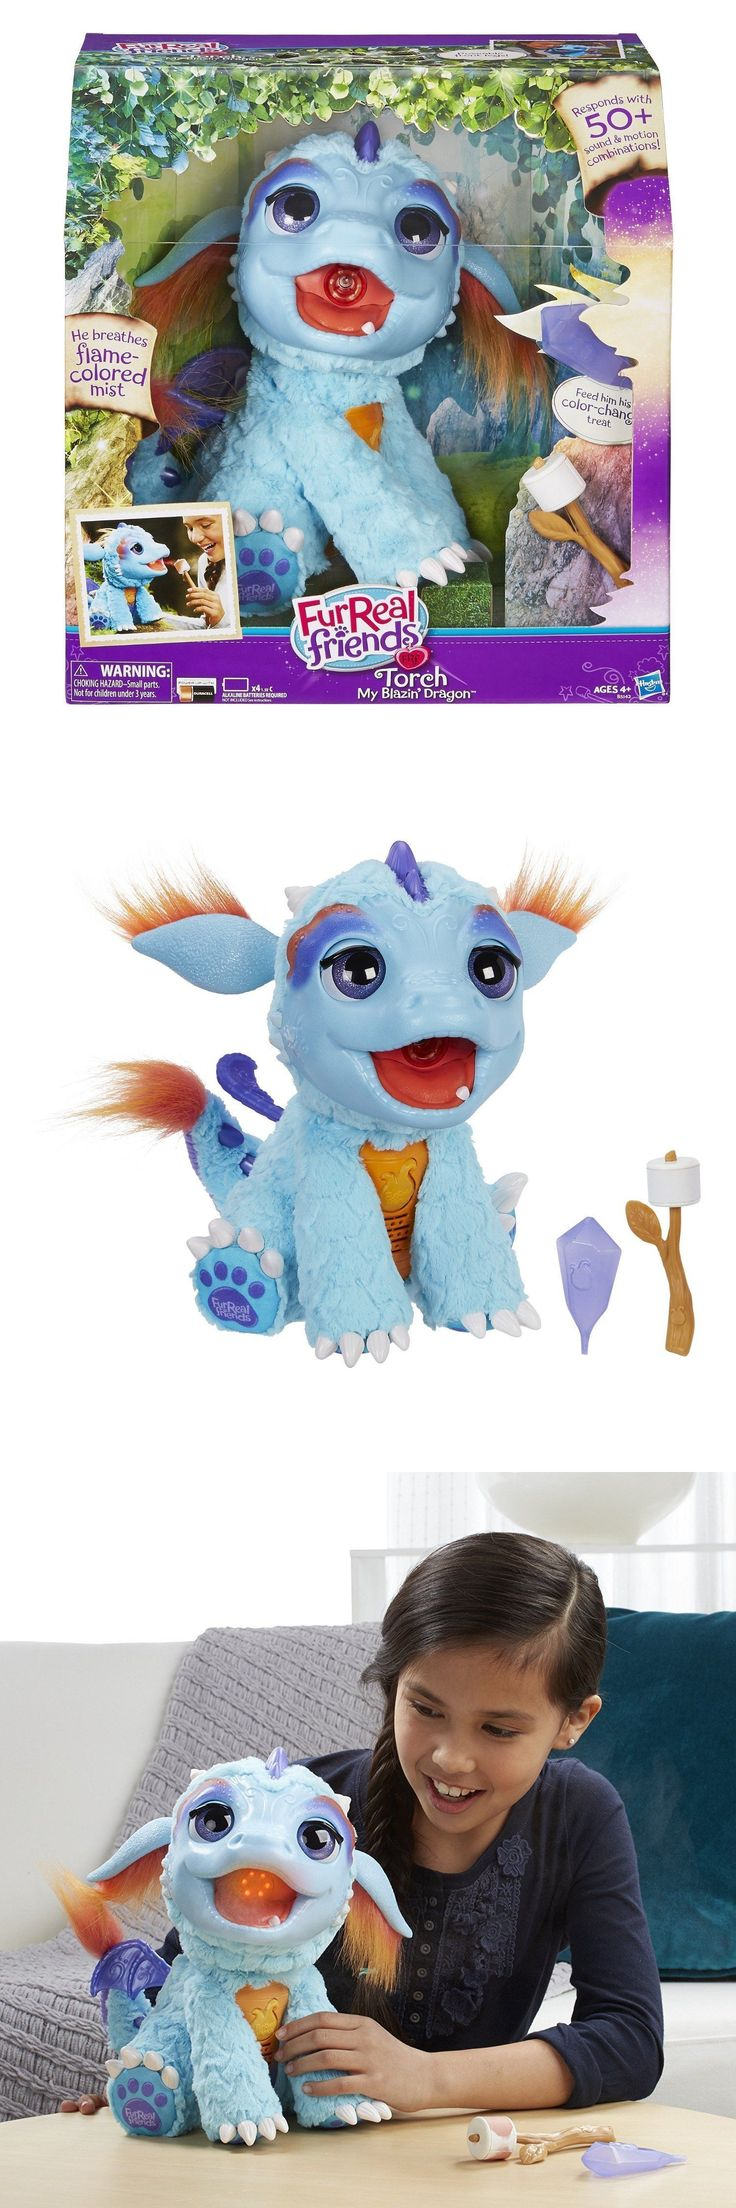 FurReal Friends 38288: Hasbro Furreal Friends Torch My Blazin Dragon Interactive Toy Plush -> BUY IT NOW ONLY: $68.95 on eBay!